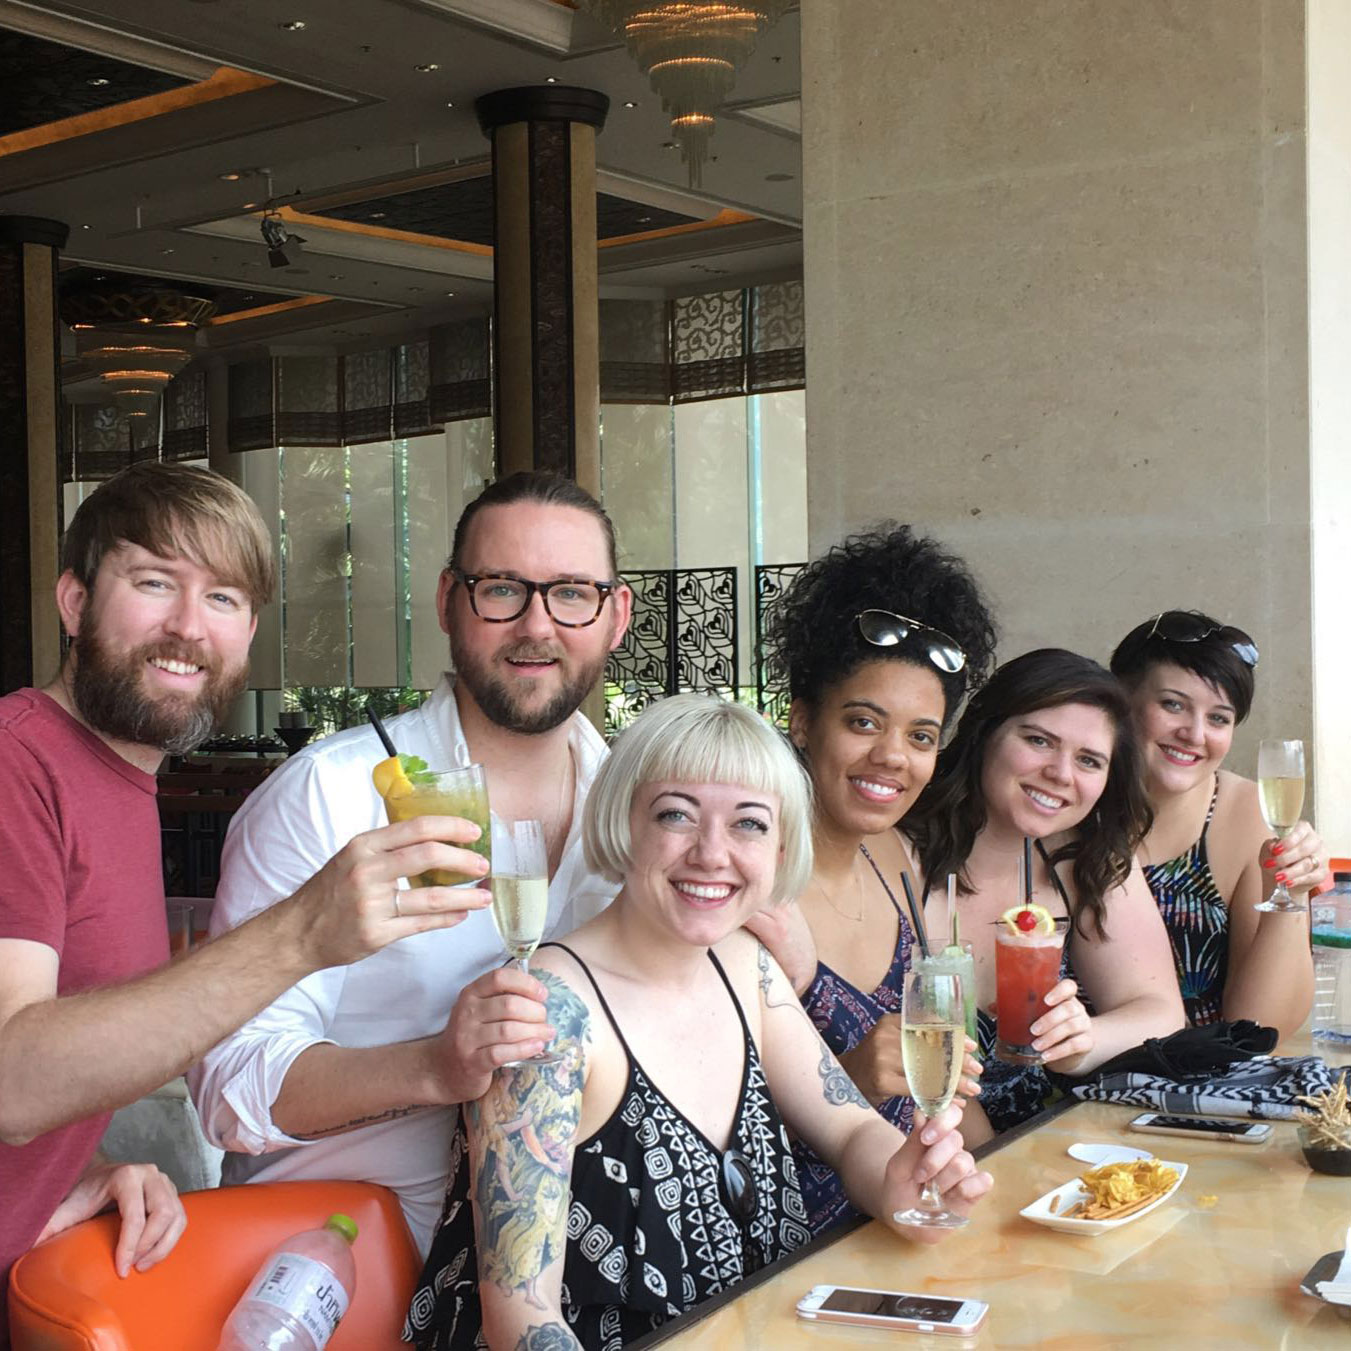 A toast for all of us back home from Brent, Charlie, Mackenzie, Nikki, Natalie and Reilly. Nikki celebrated her birthday in Thailand. Cheers!